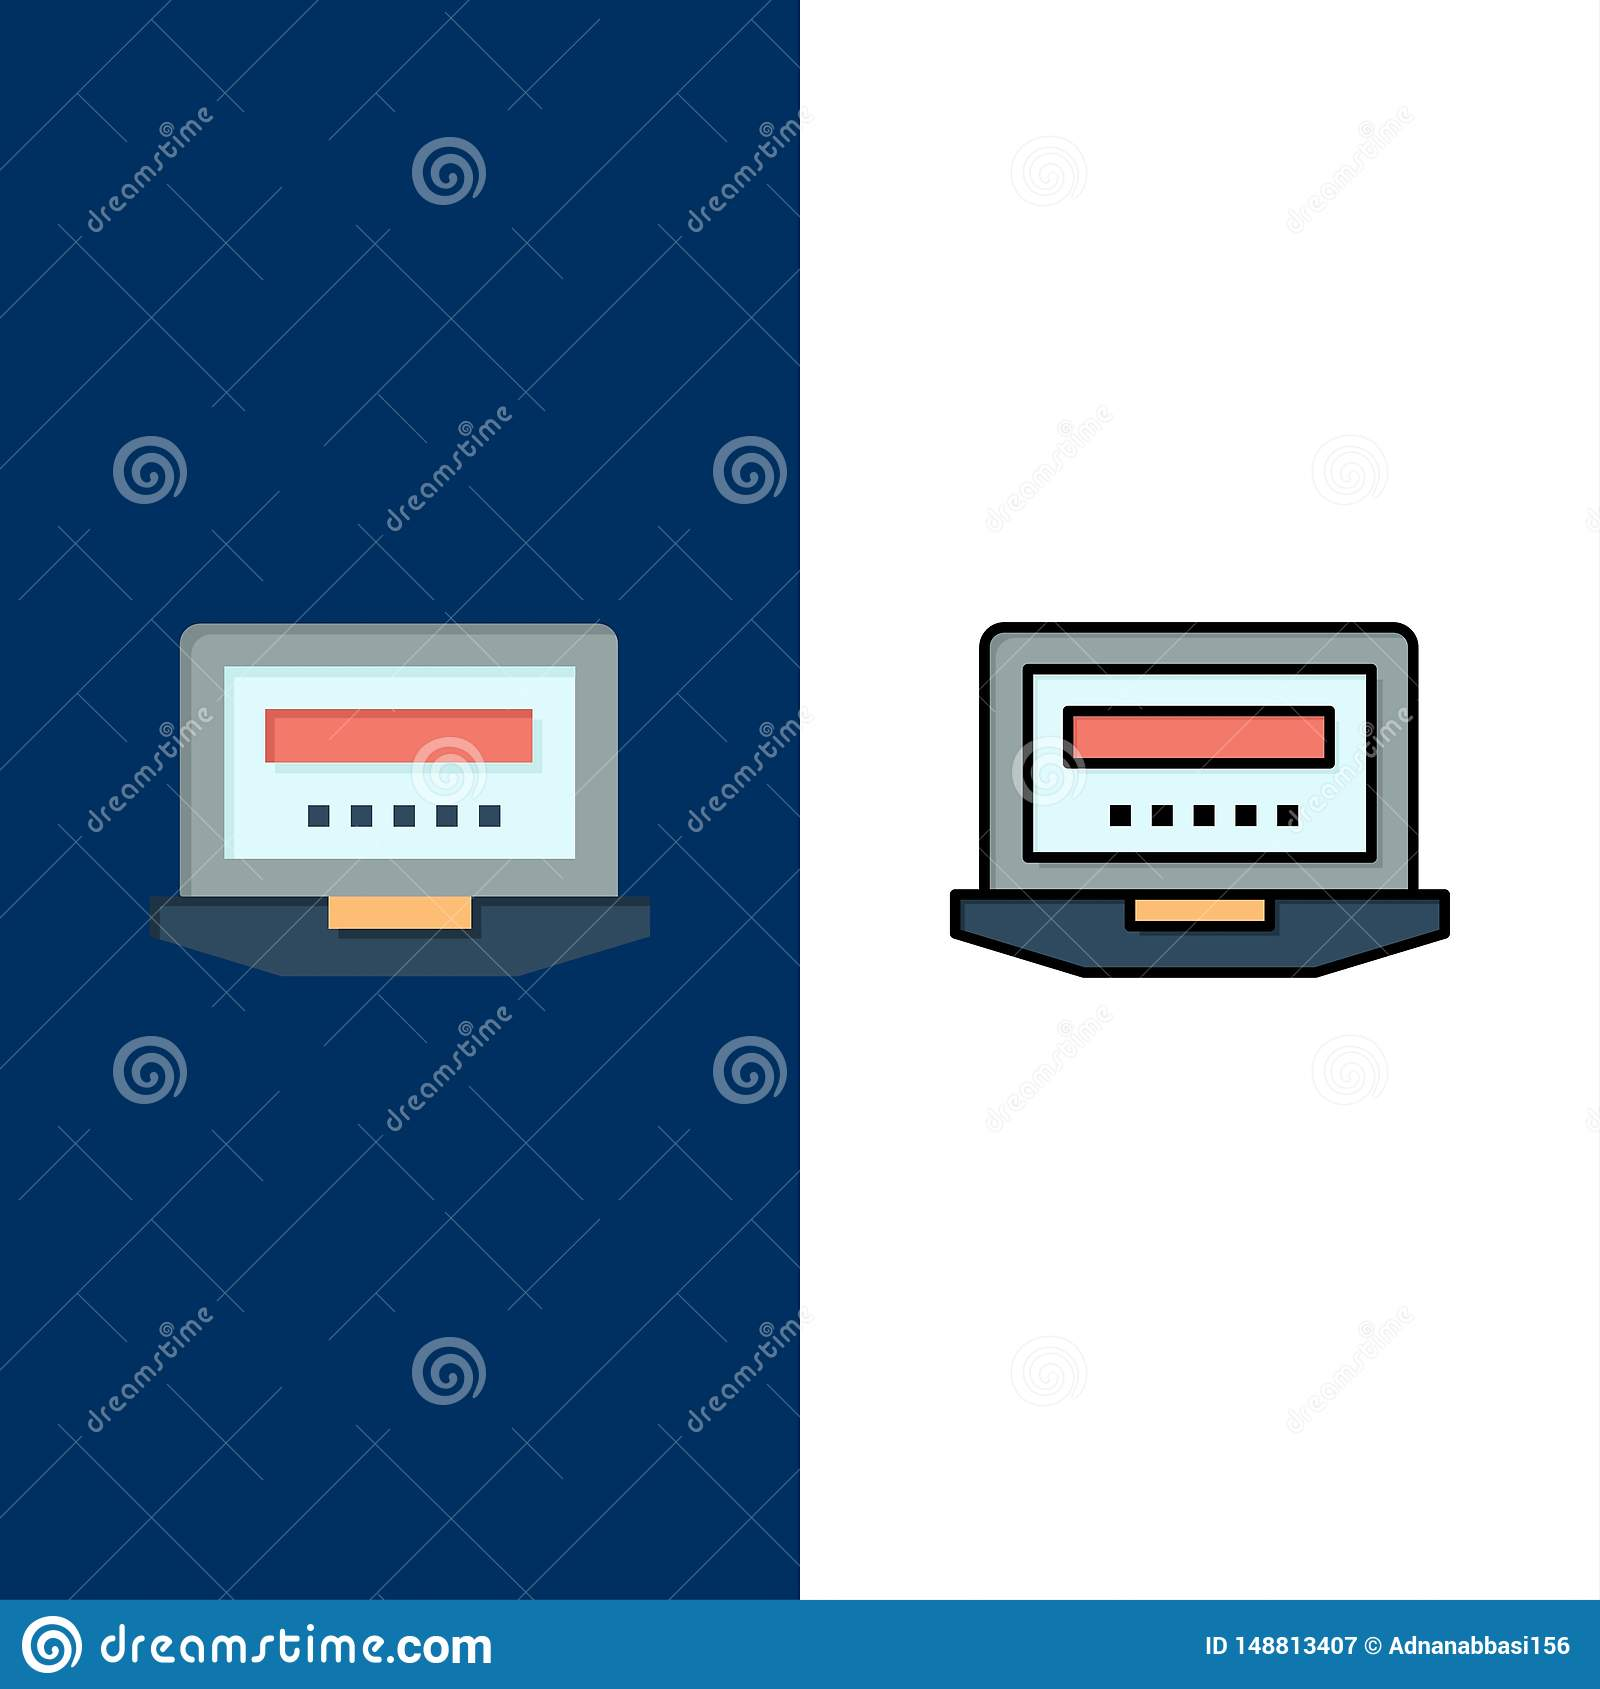 Laptop, Computer, Hardware, Education  Icons. Flat and Line Filled Icon Set Vector Blue Background